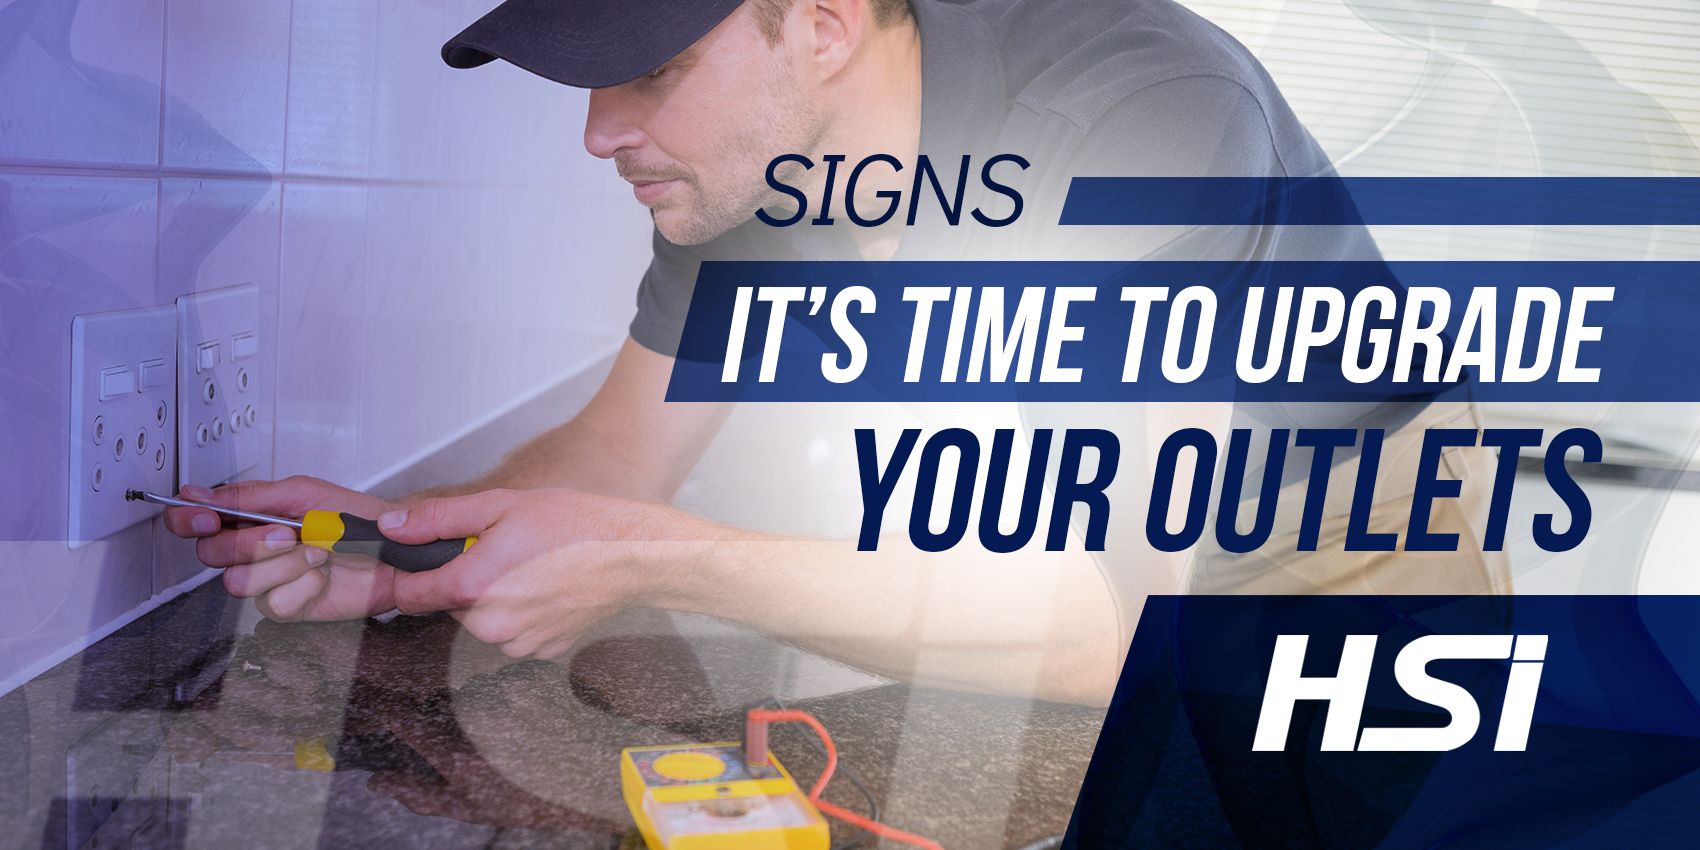 Signs It's Time to Upgrade Your Outlets